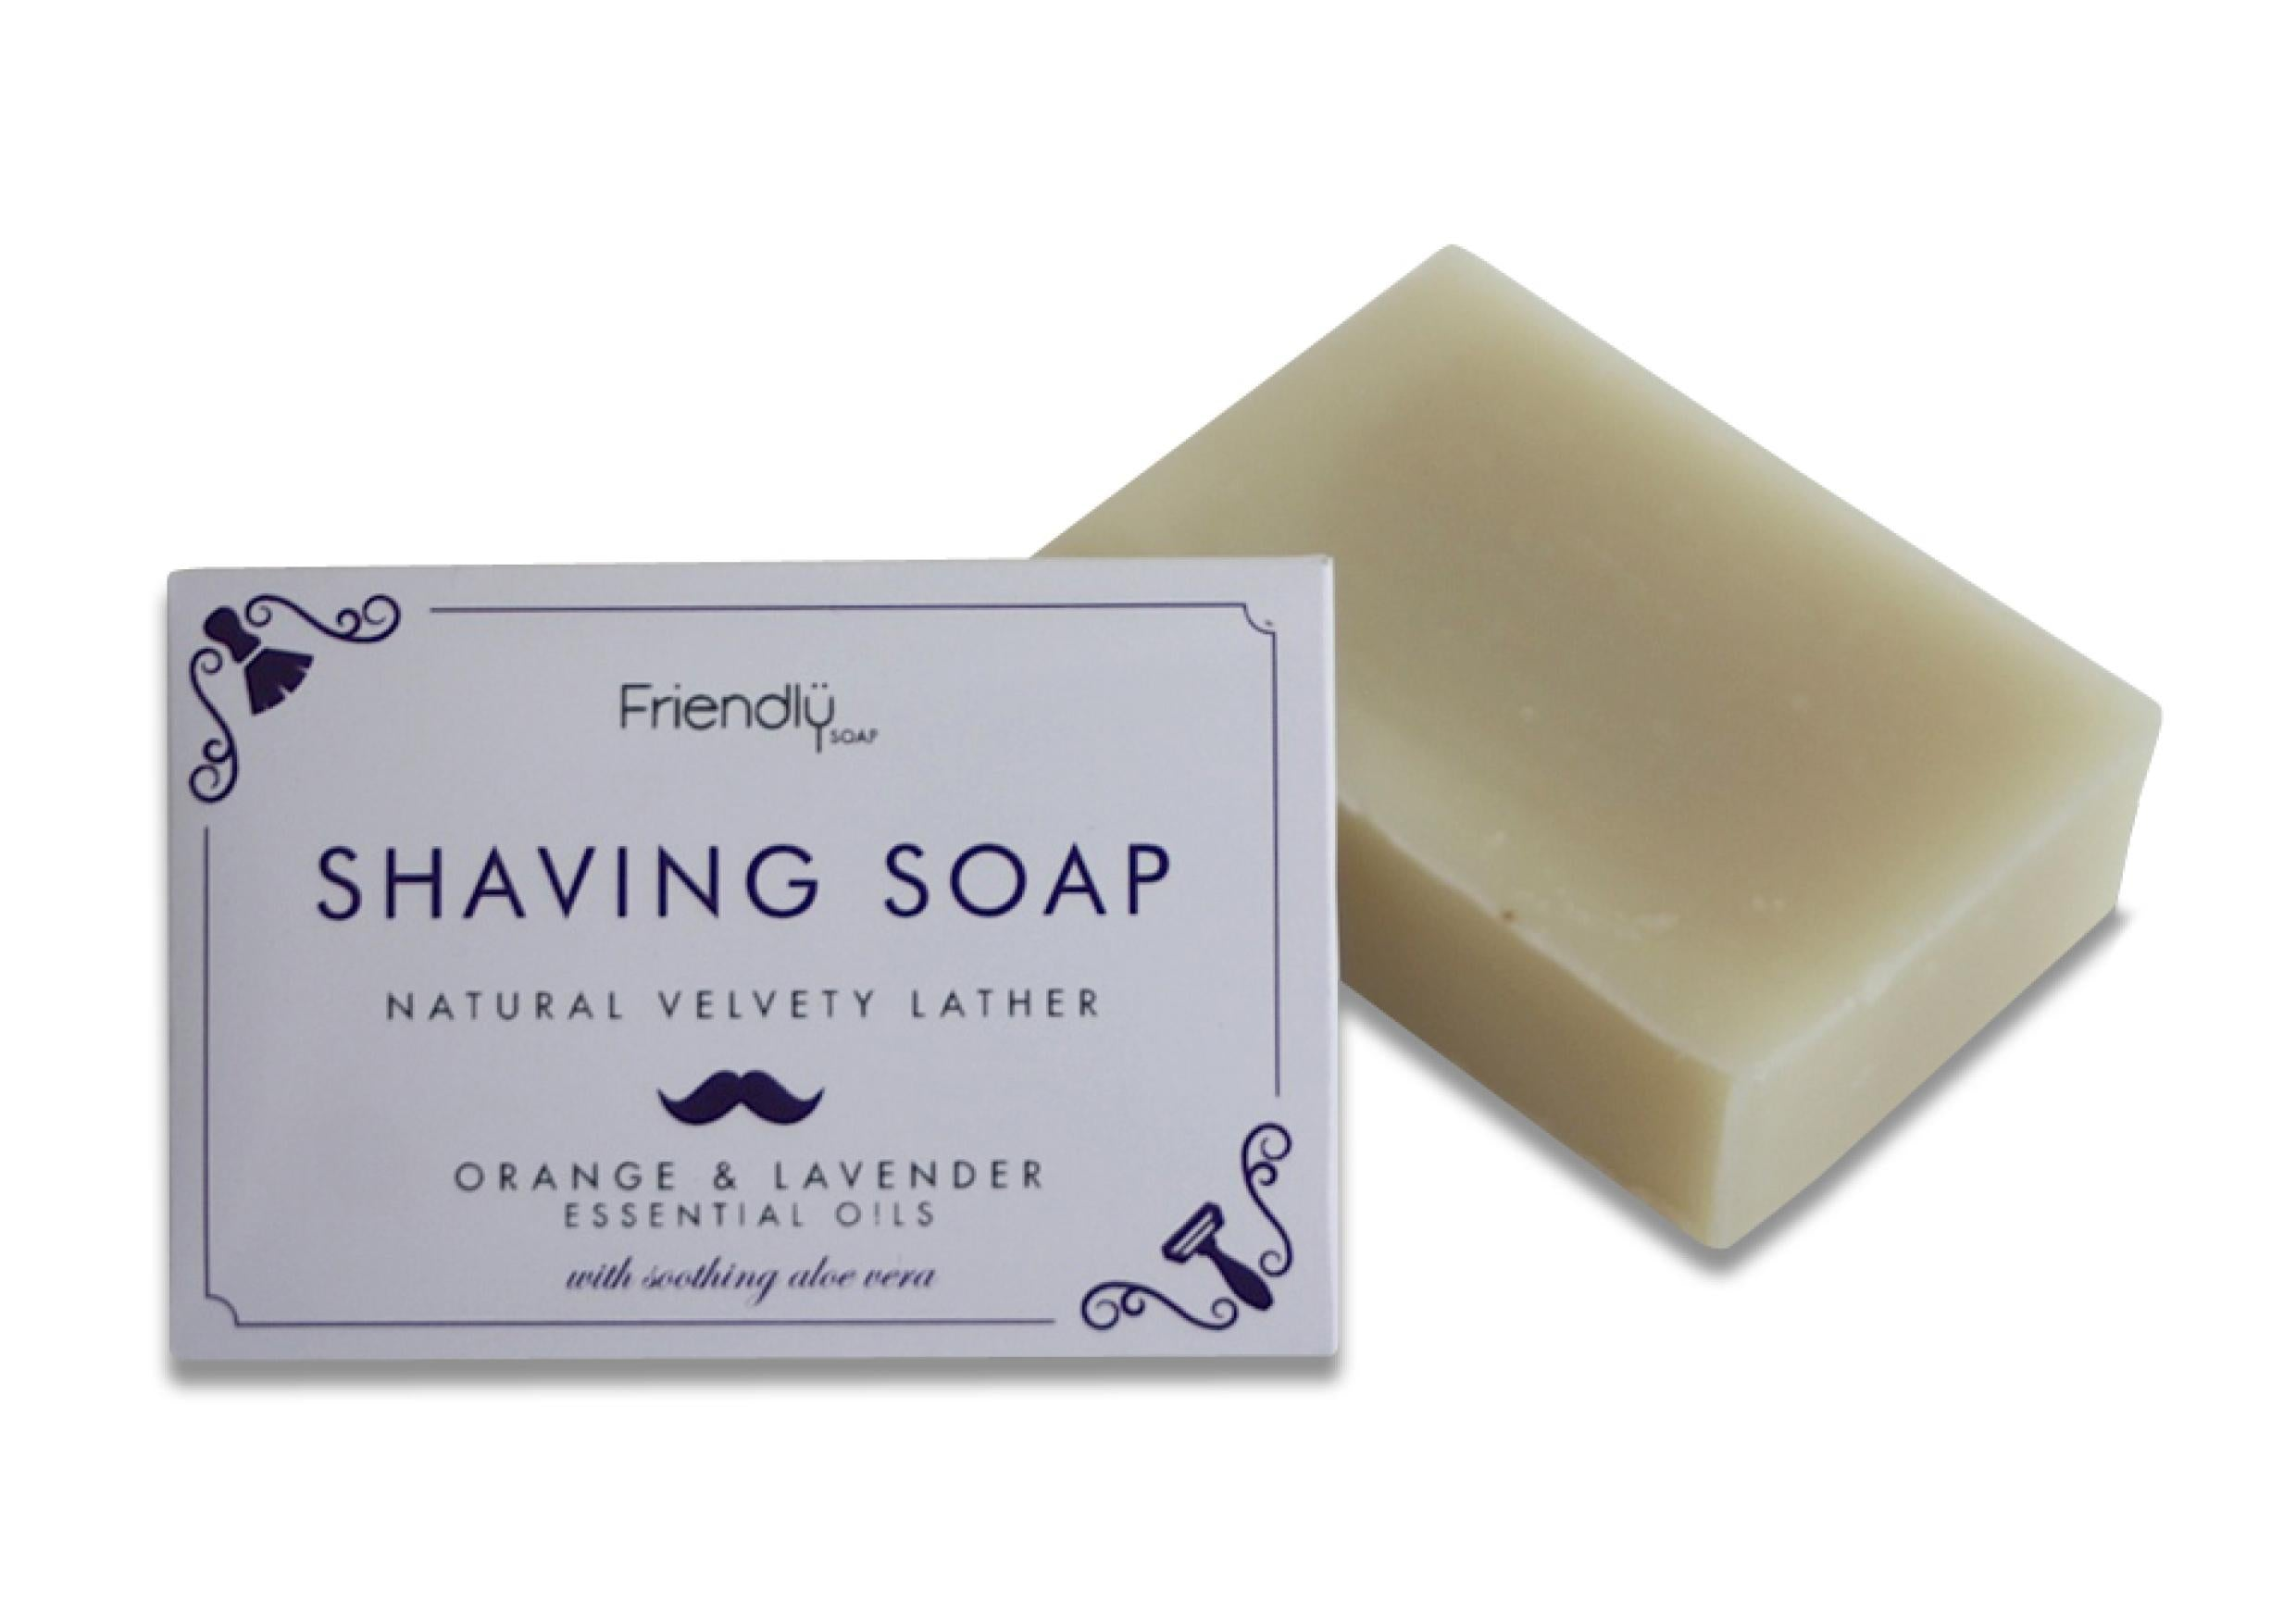 Friendly Soap Shaving Soap Bar Appelsiini-Laventeli n. 90g